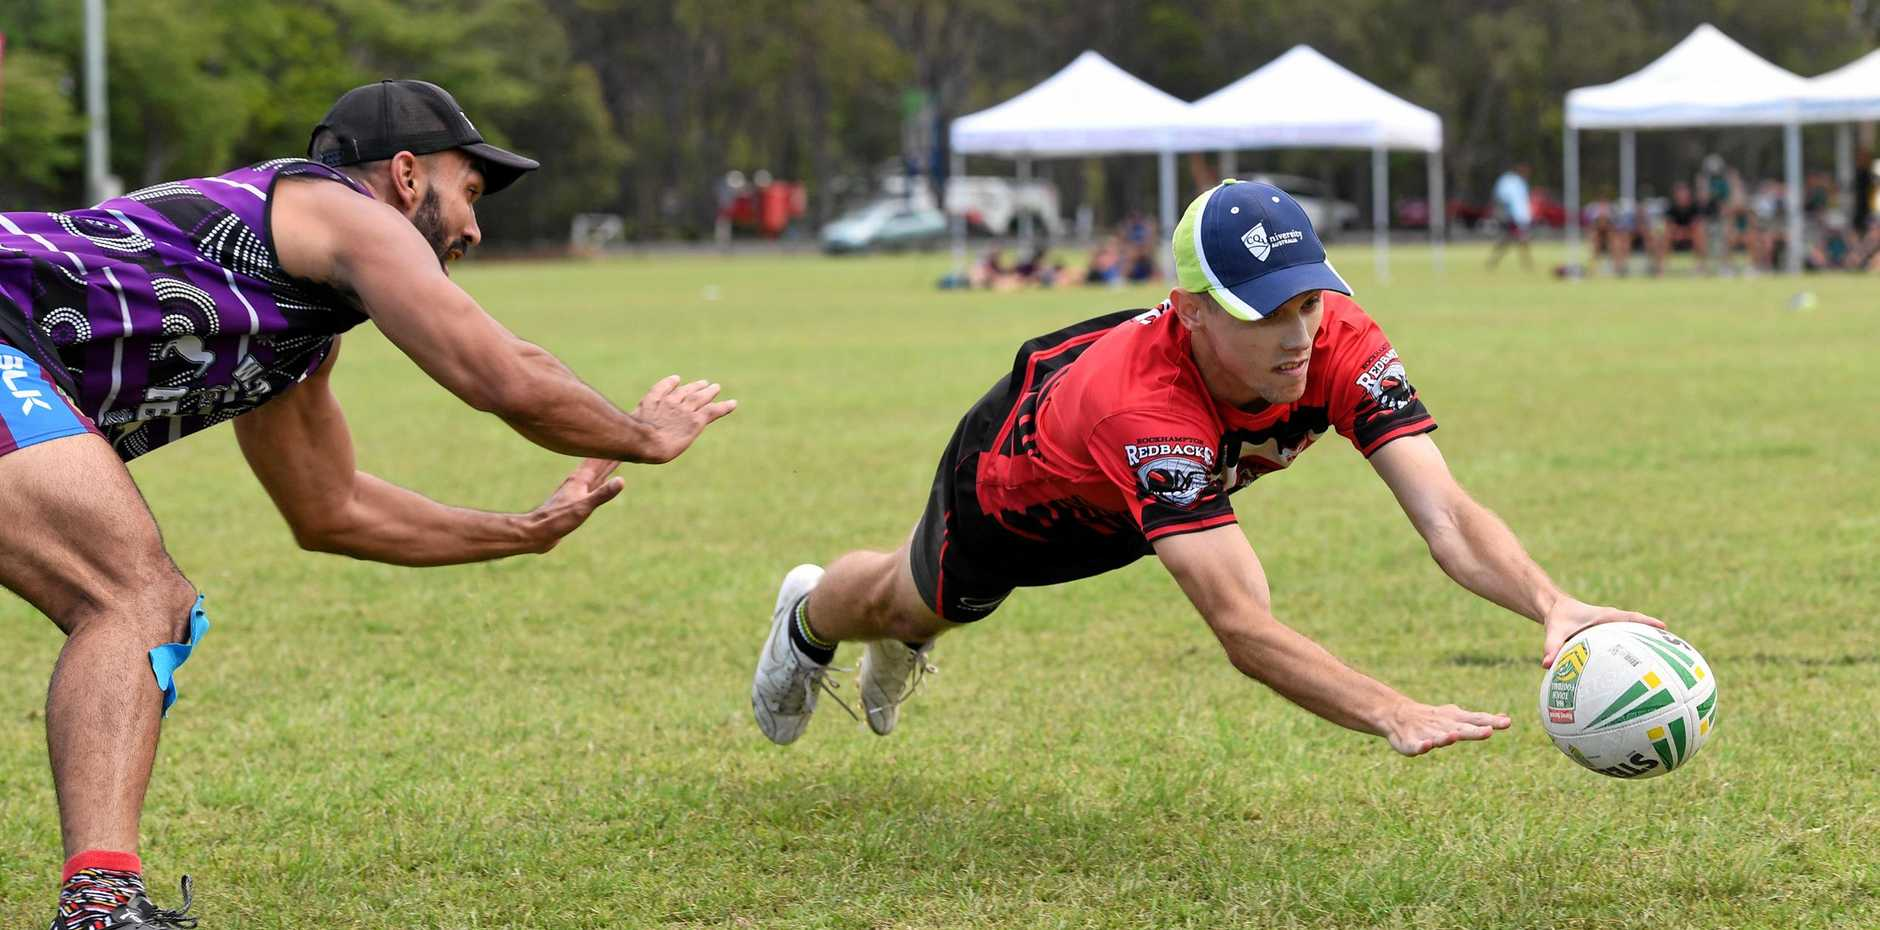 TOUCH FINAL: Jayden Benbow crosses the line during a recent Bundaberg Cup. This year's competition will see a large increase in teams competing.